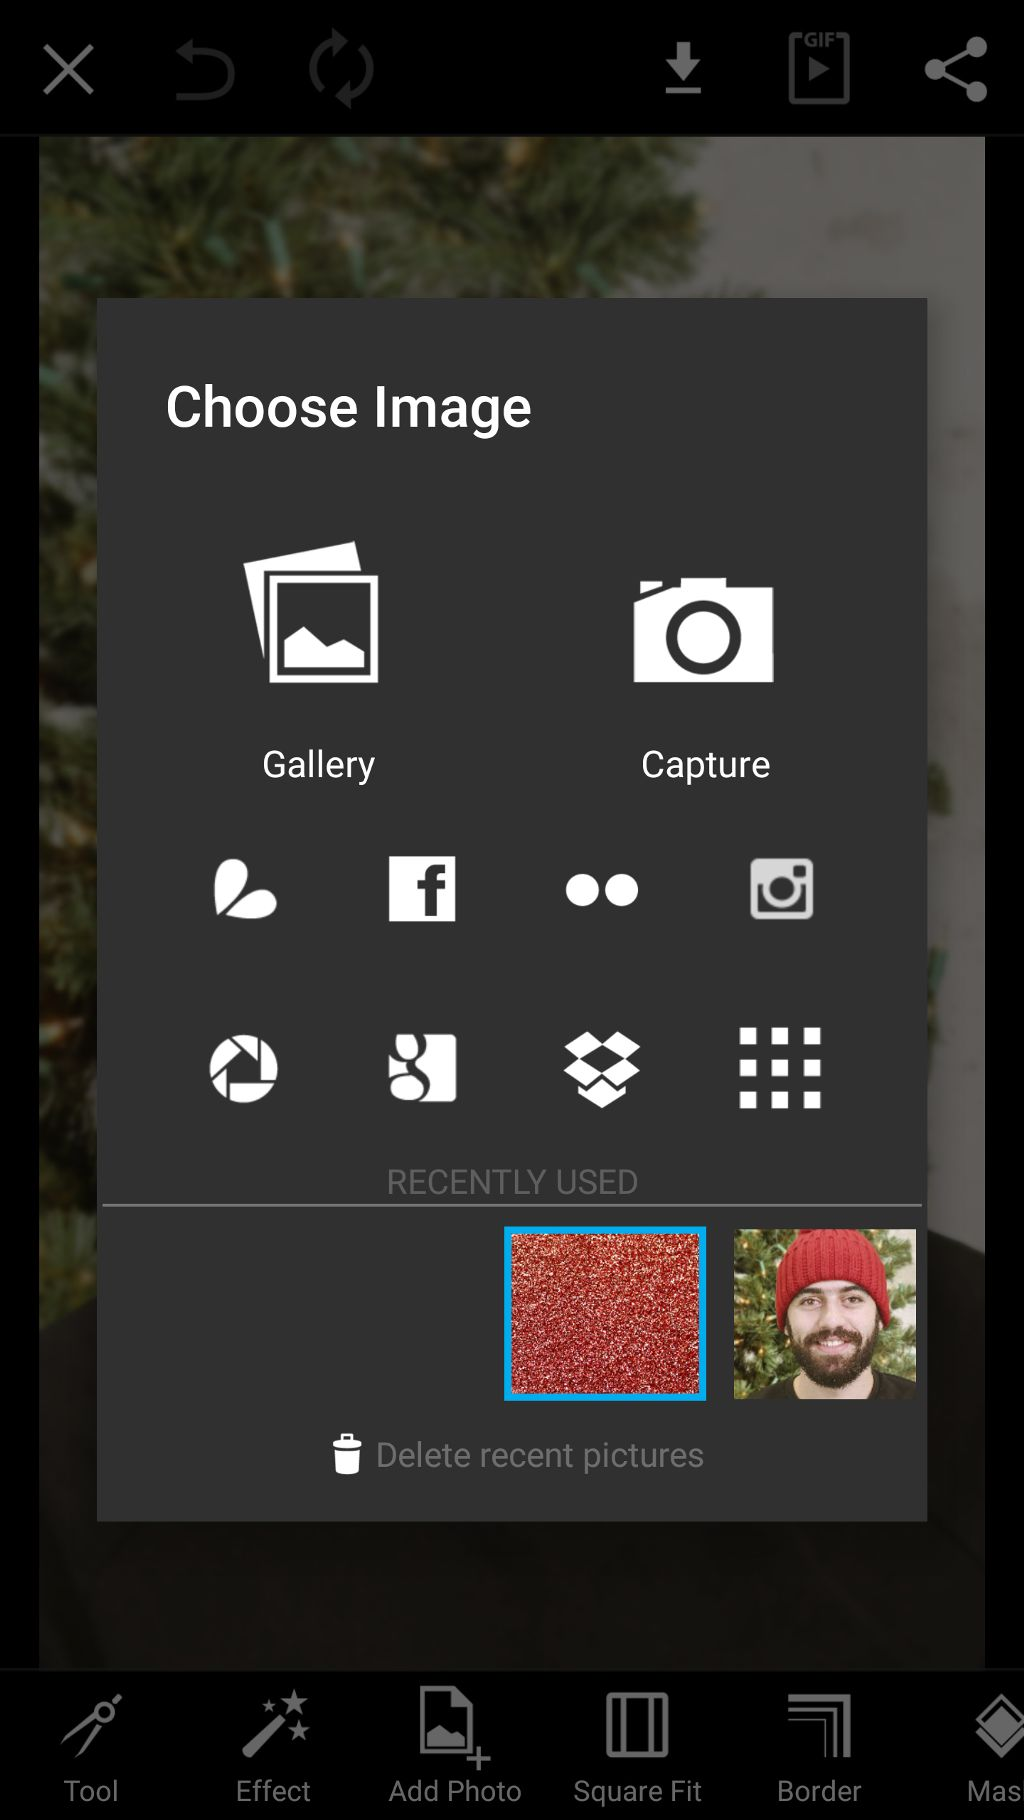 Choose a photo to edit